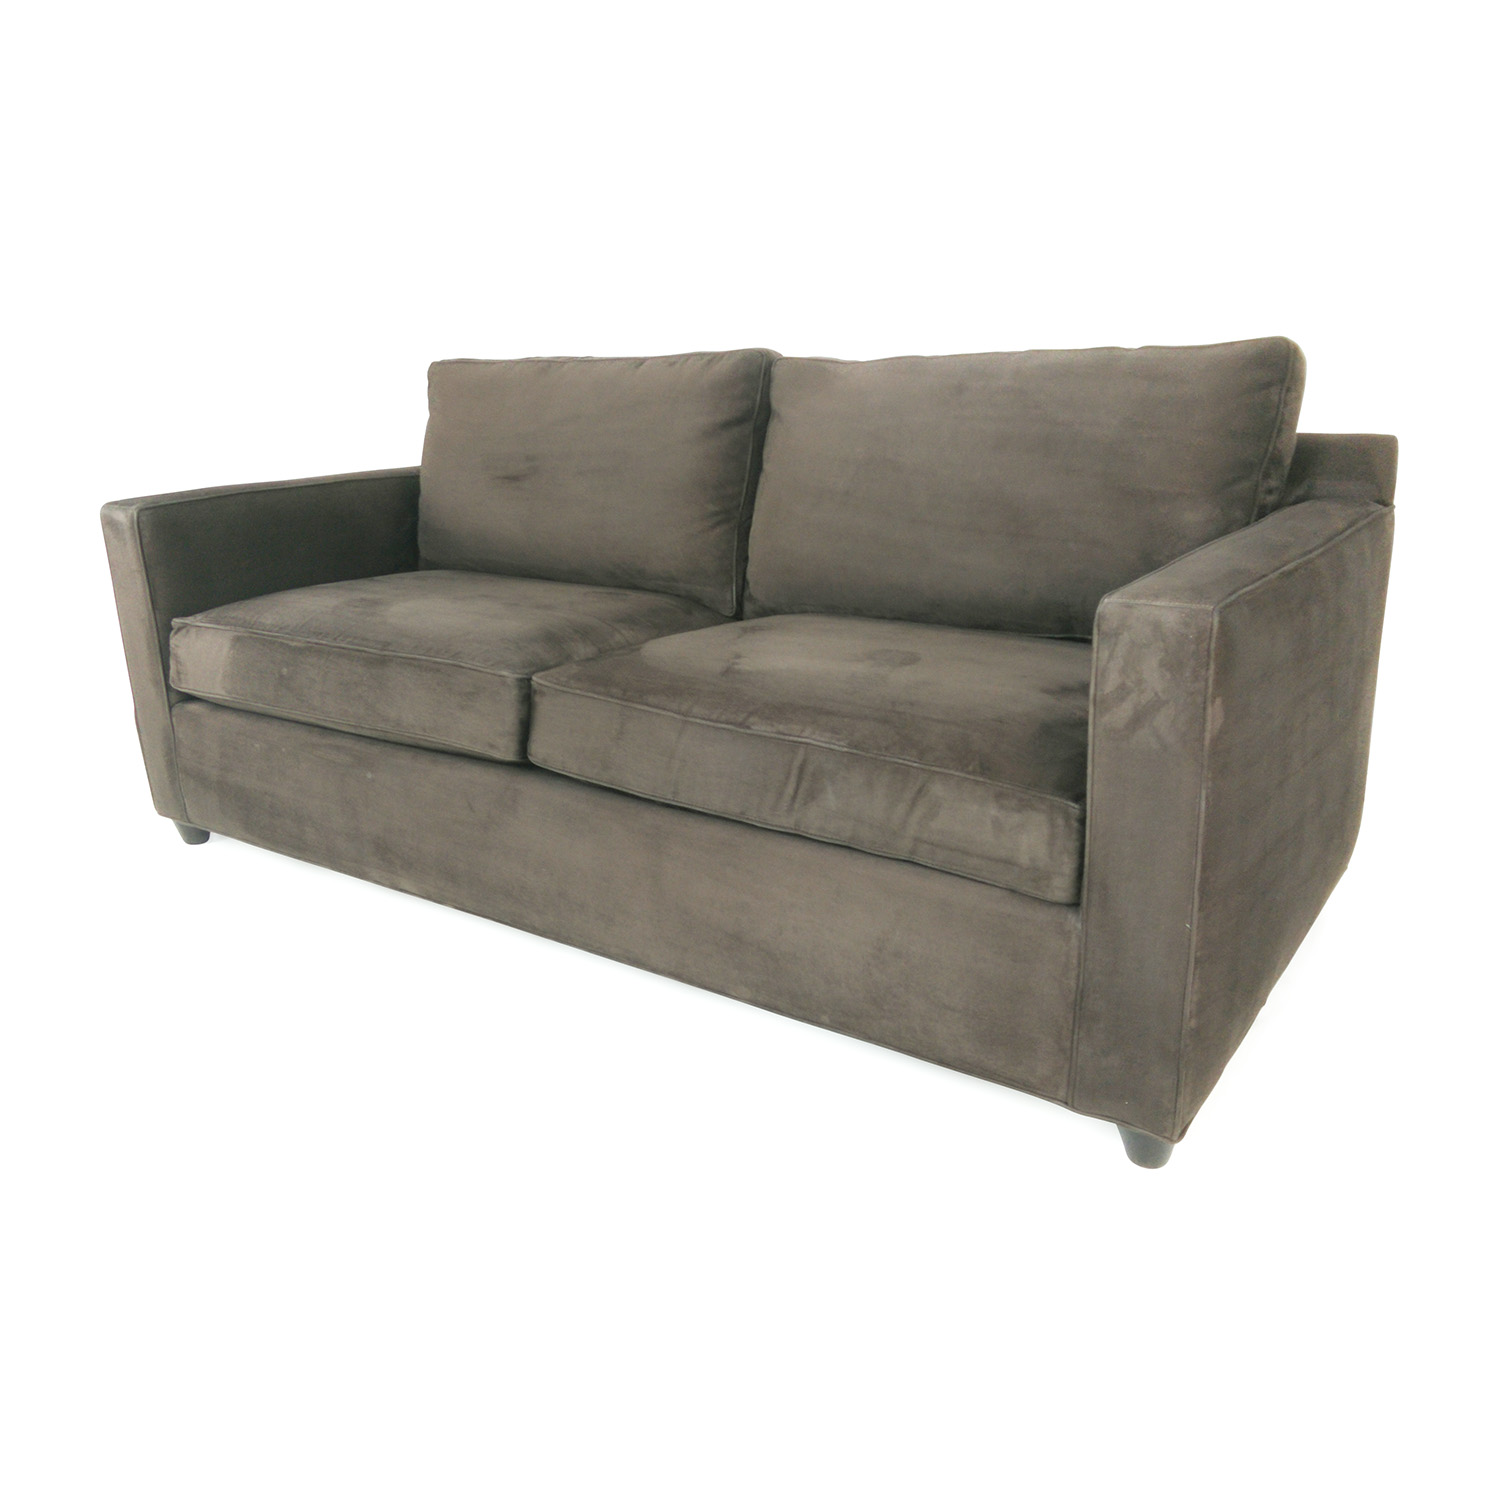 crate and barrel leather sofa bed air single seater 57 off davis sofas